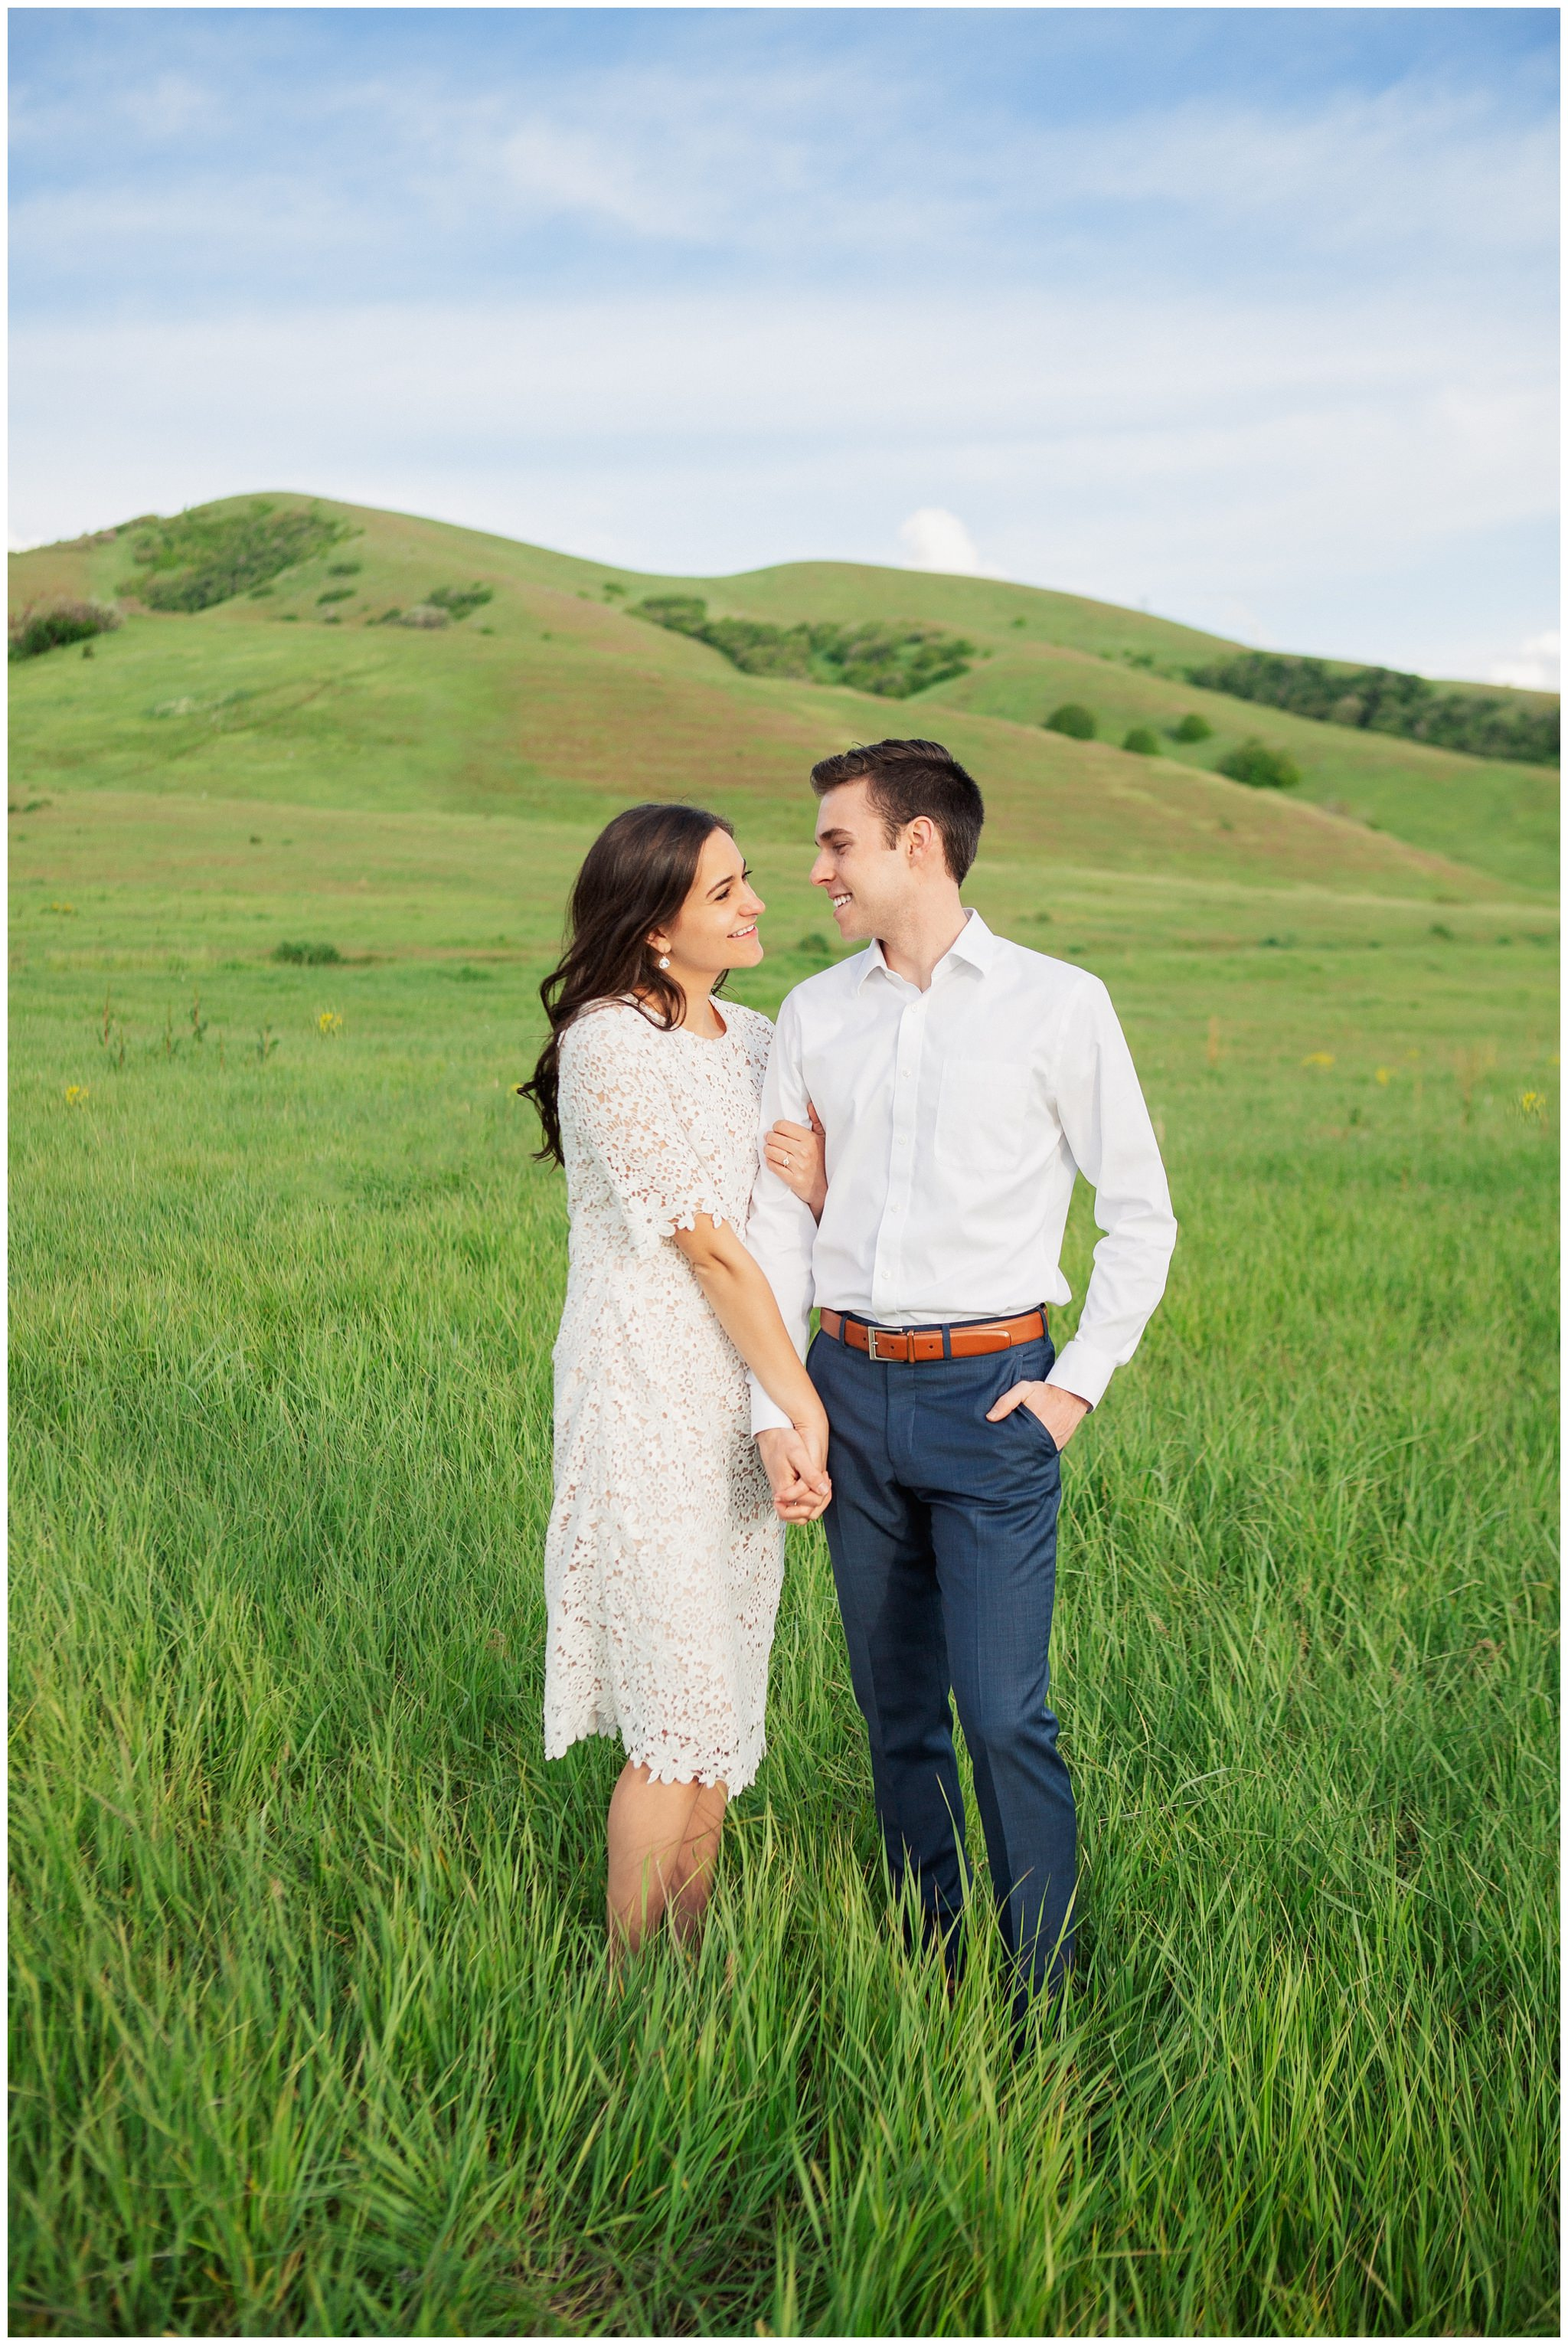 Couple smiling while holding hands for Engagement photos